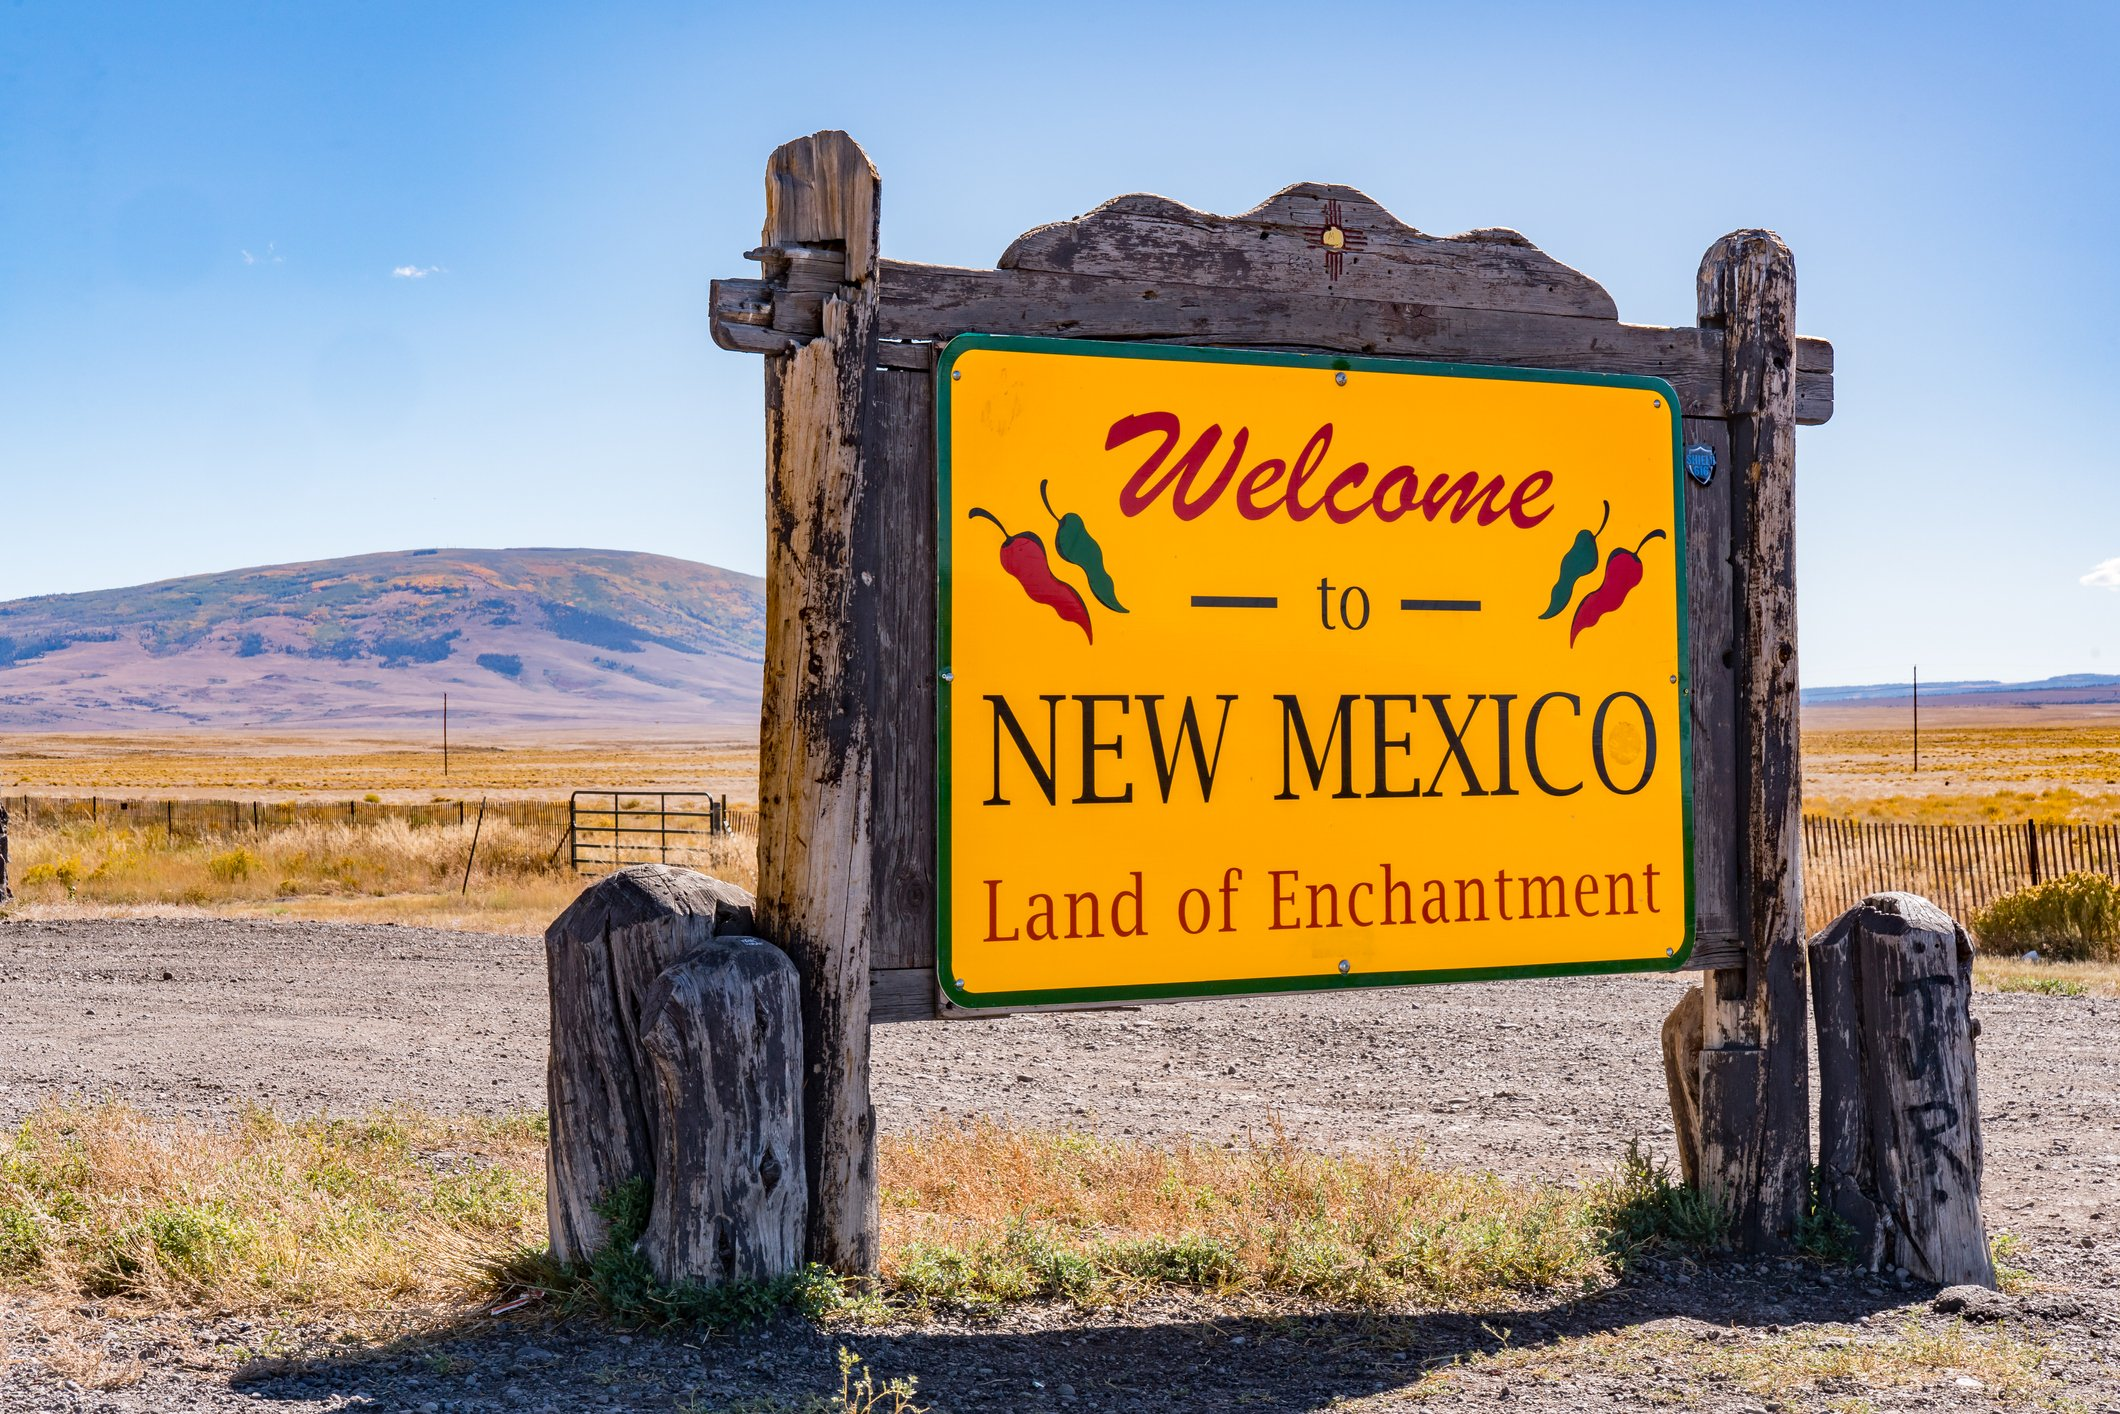 Slide 32 of 51: The sign for New Mexico references the state flag, branding itself with the colors red and yellow.